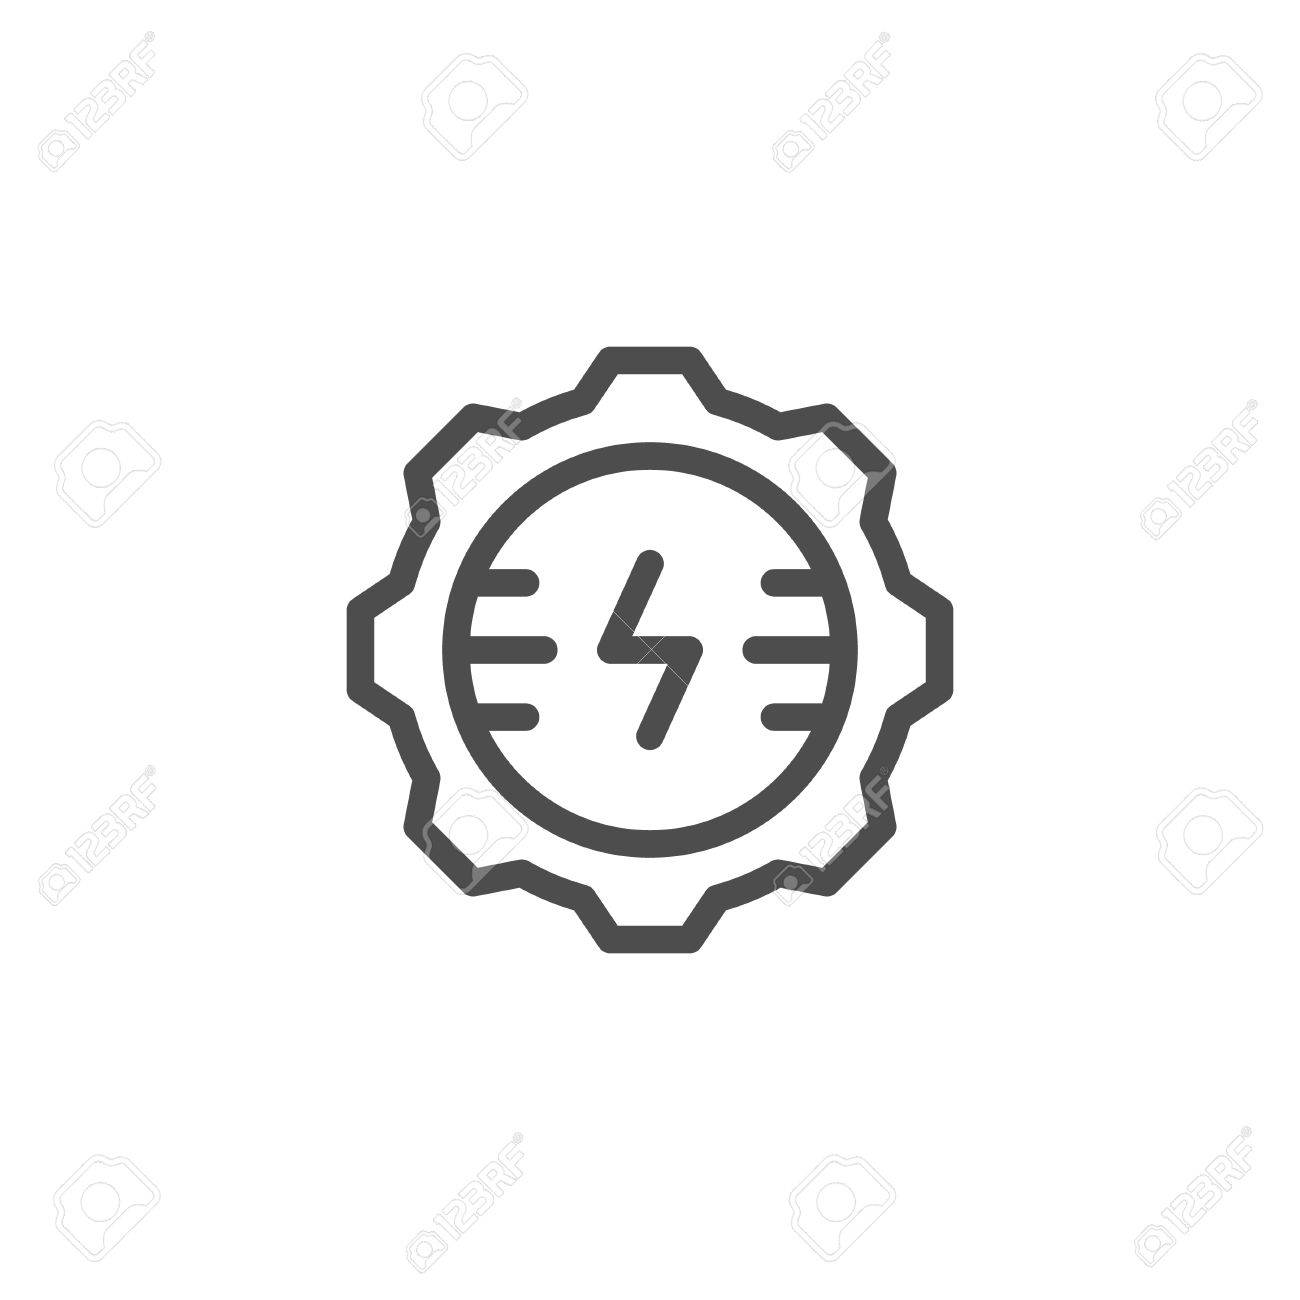 Electrical Engineering Line Icon Royalty Free Cliparts, Vectors, And ...